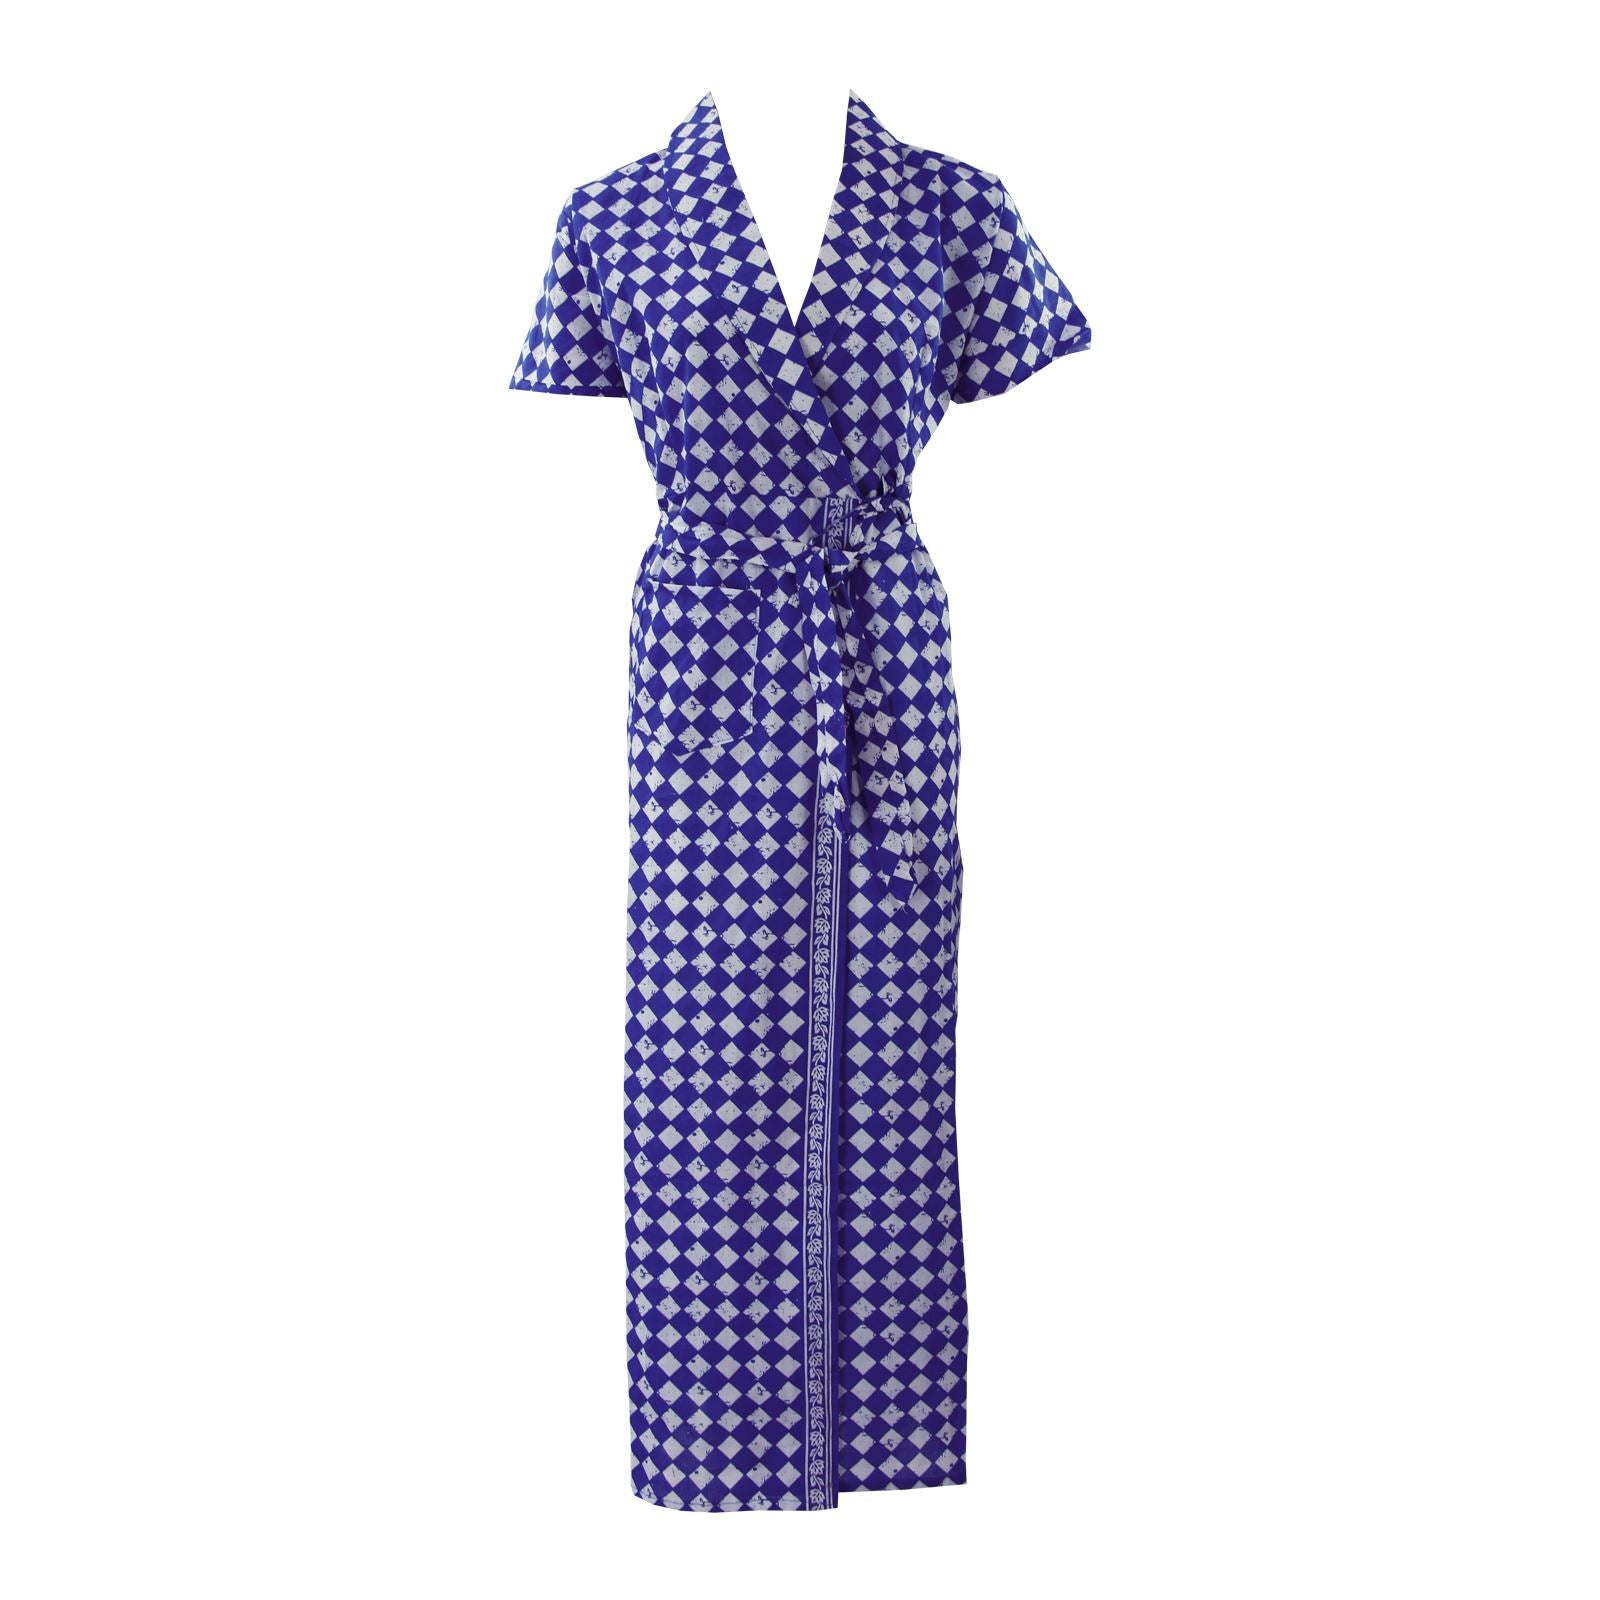 Color: Blue Square 100% Cotton Bathrobe Wrap Gown Size: L (8-14)